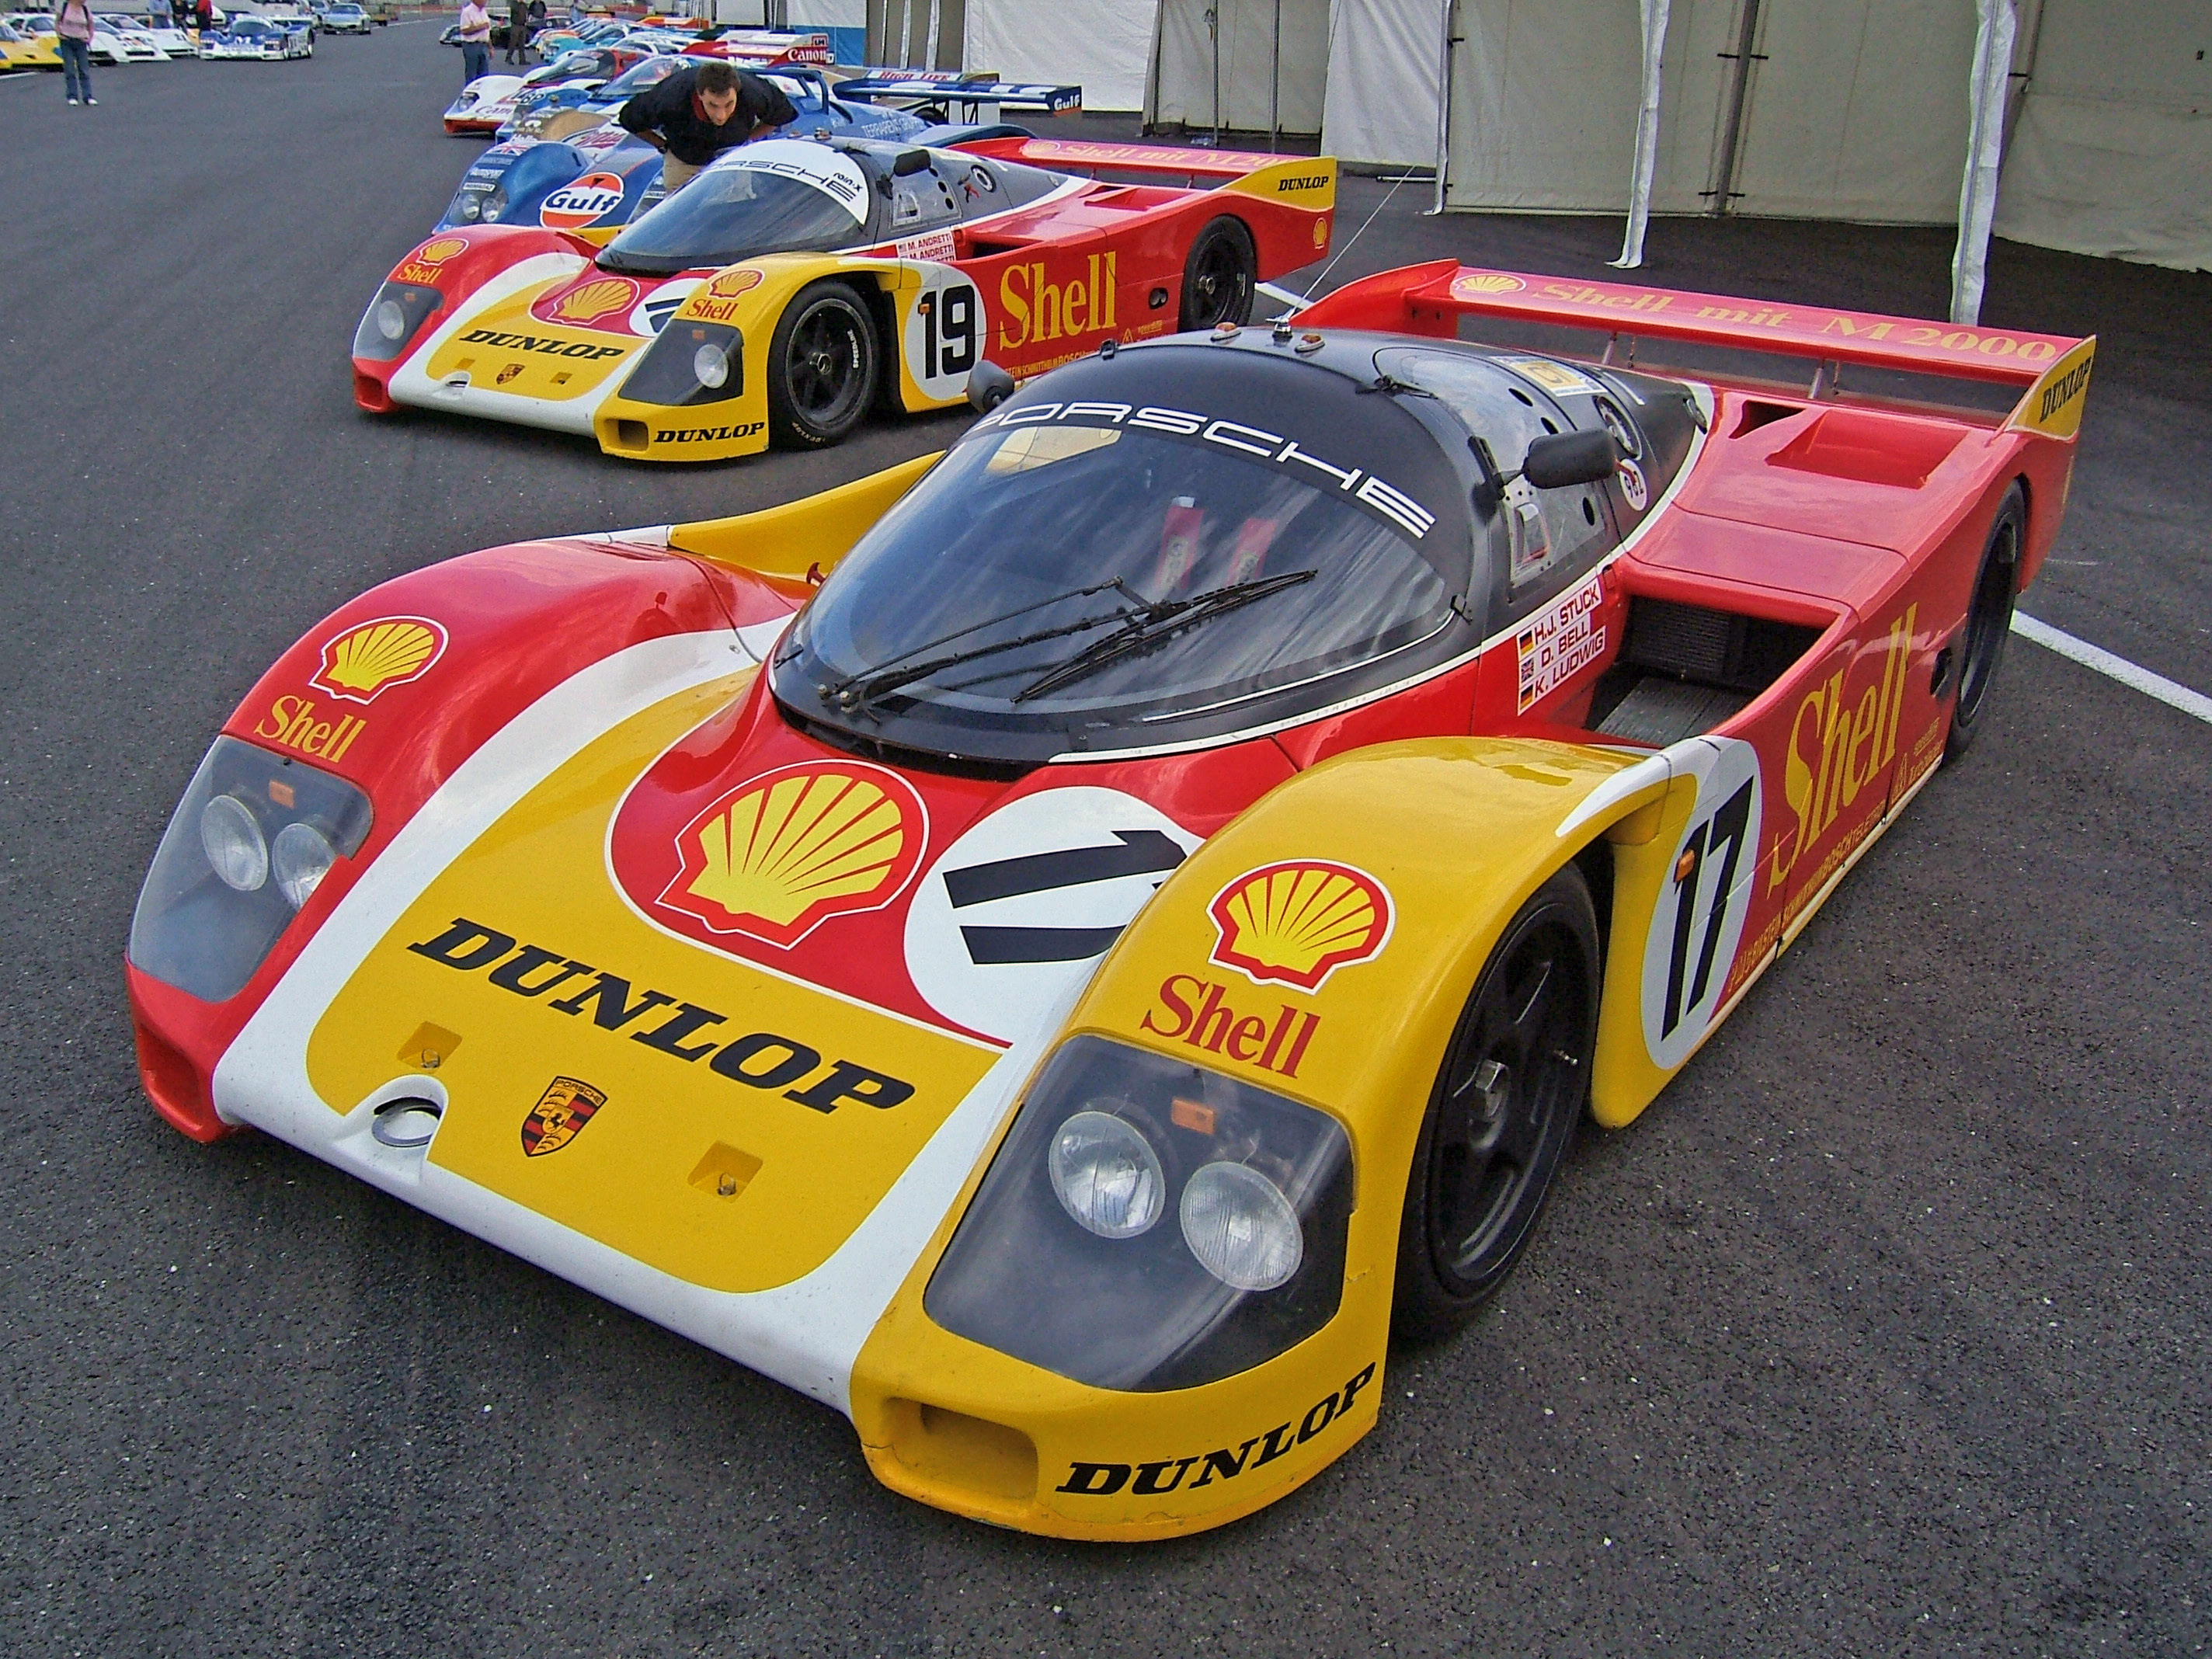 file porsche 962 1988 le mans at silverstone 2007 jpg wikimedia commons. Black Bedroom Furniture Sets. Home Design Ideas